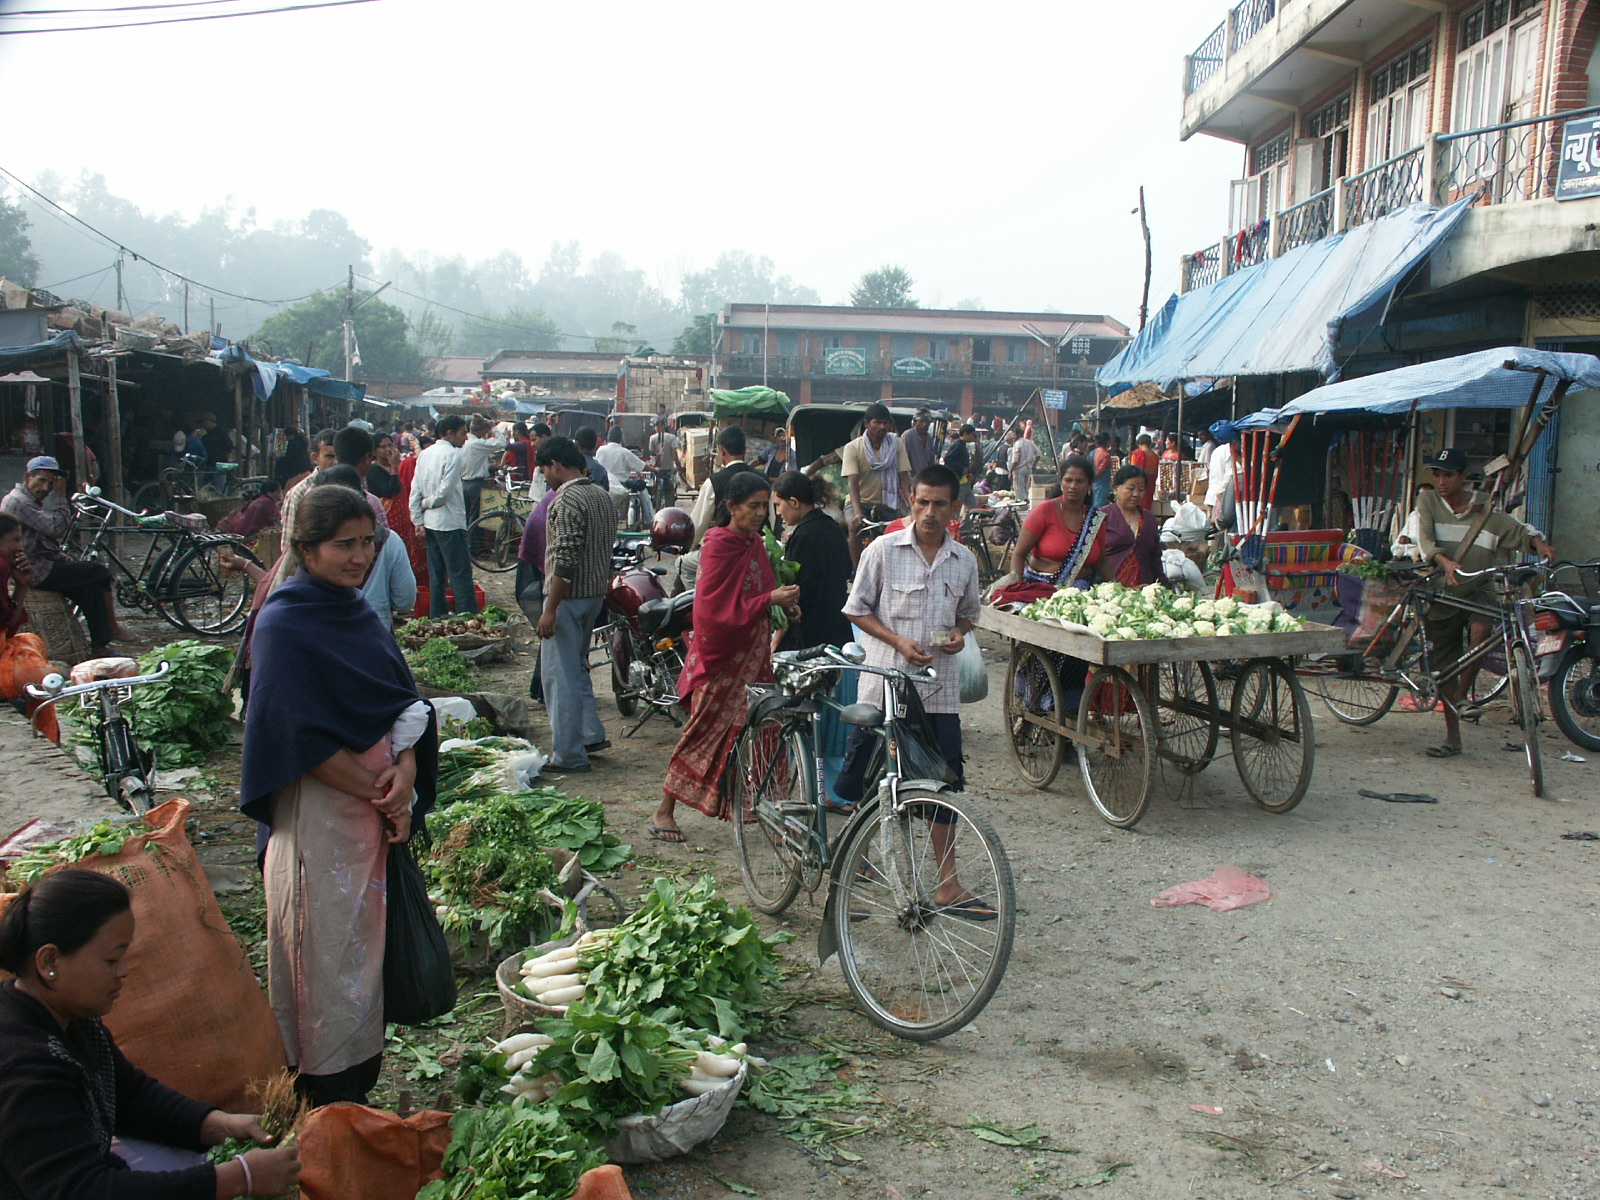 A street scene in Nepal. The roads in Nepal are shared territory. Here you can see vendors, bicycles, handcarts, motorcycles, rickshaws and pedestrians all sharing the same space.